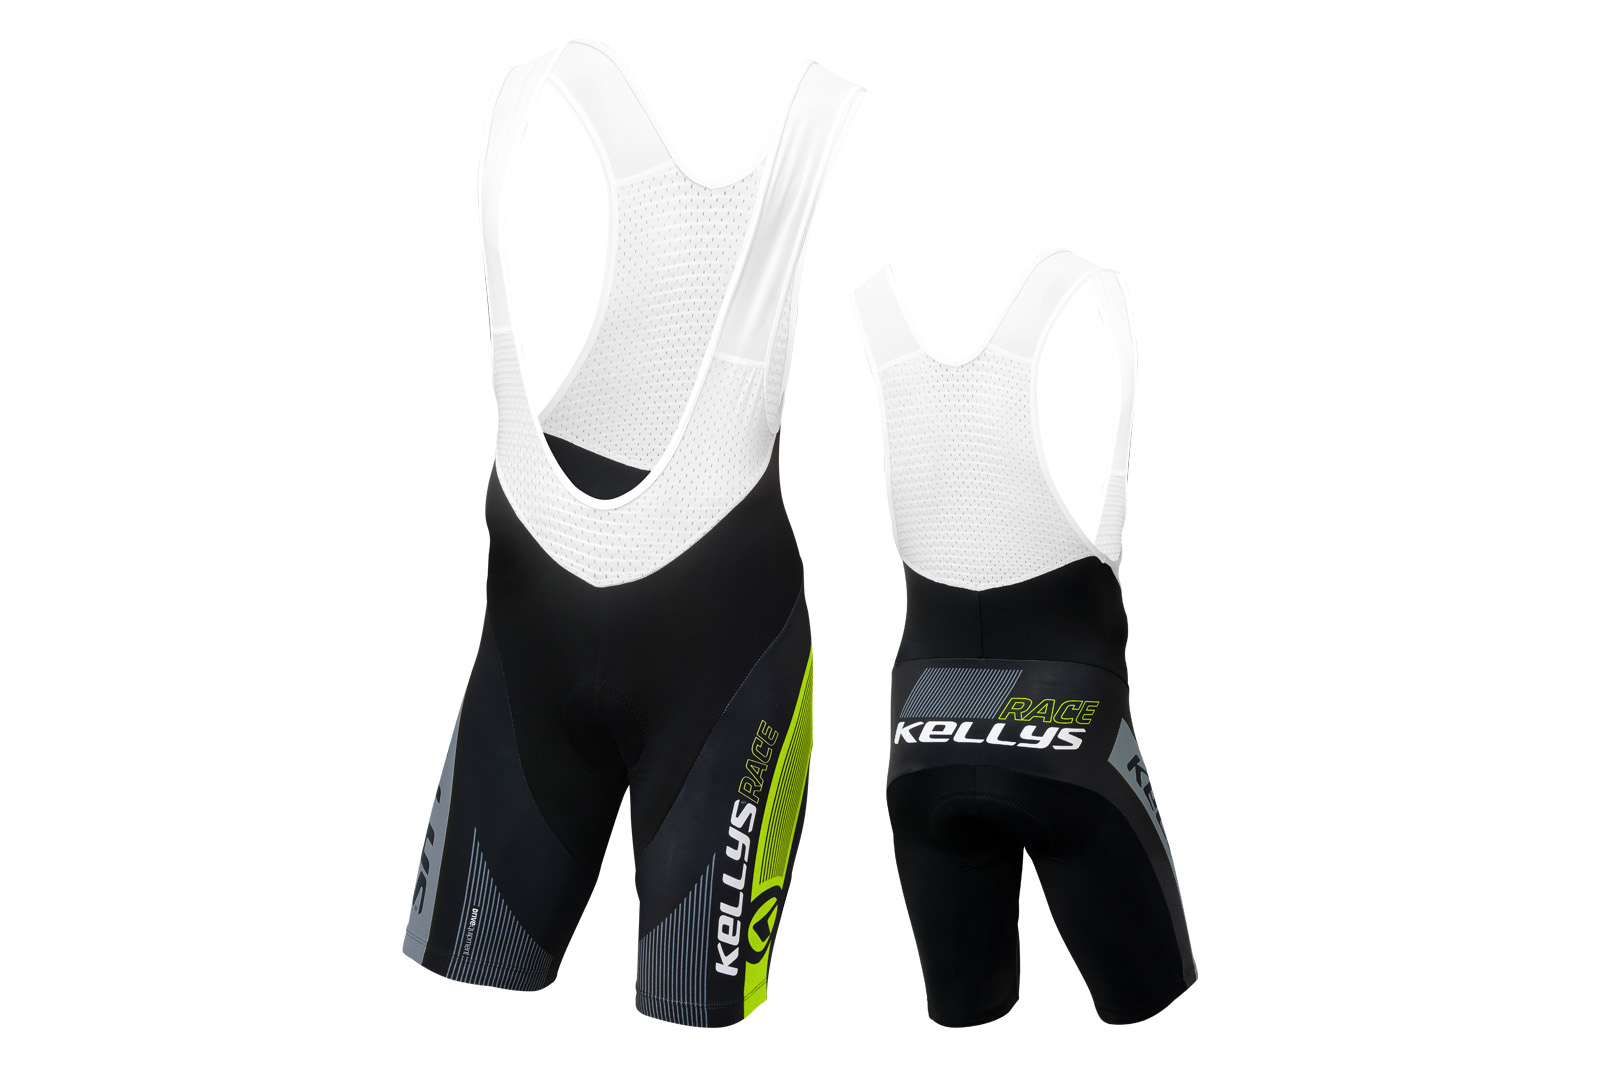 Profiträgerhose KELLYS PRO Race mit Sitzpolster lime - S - Sport Cycling Meindl - professional cycling